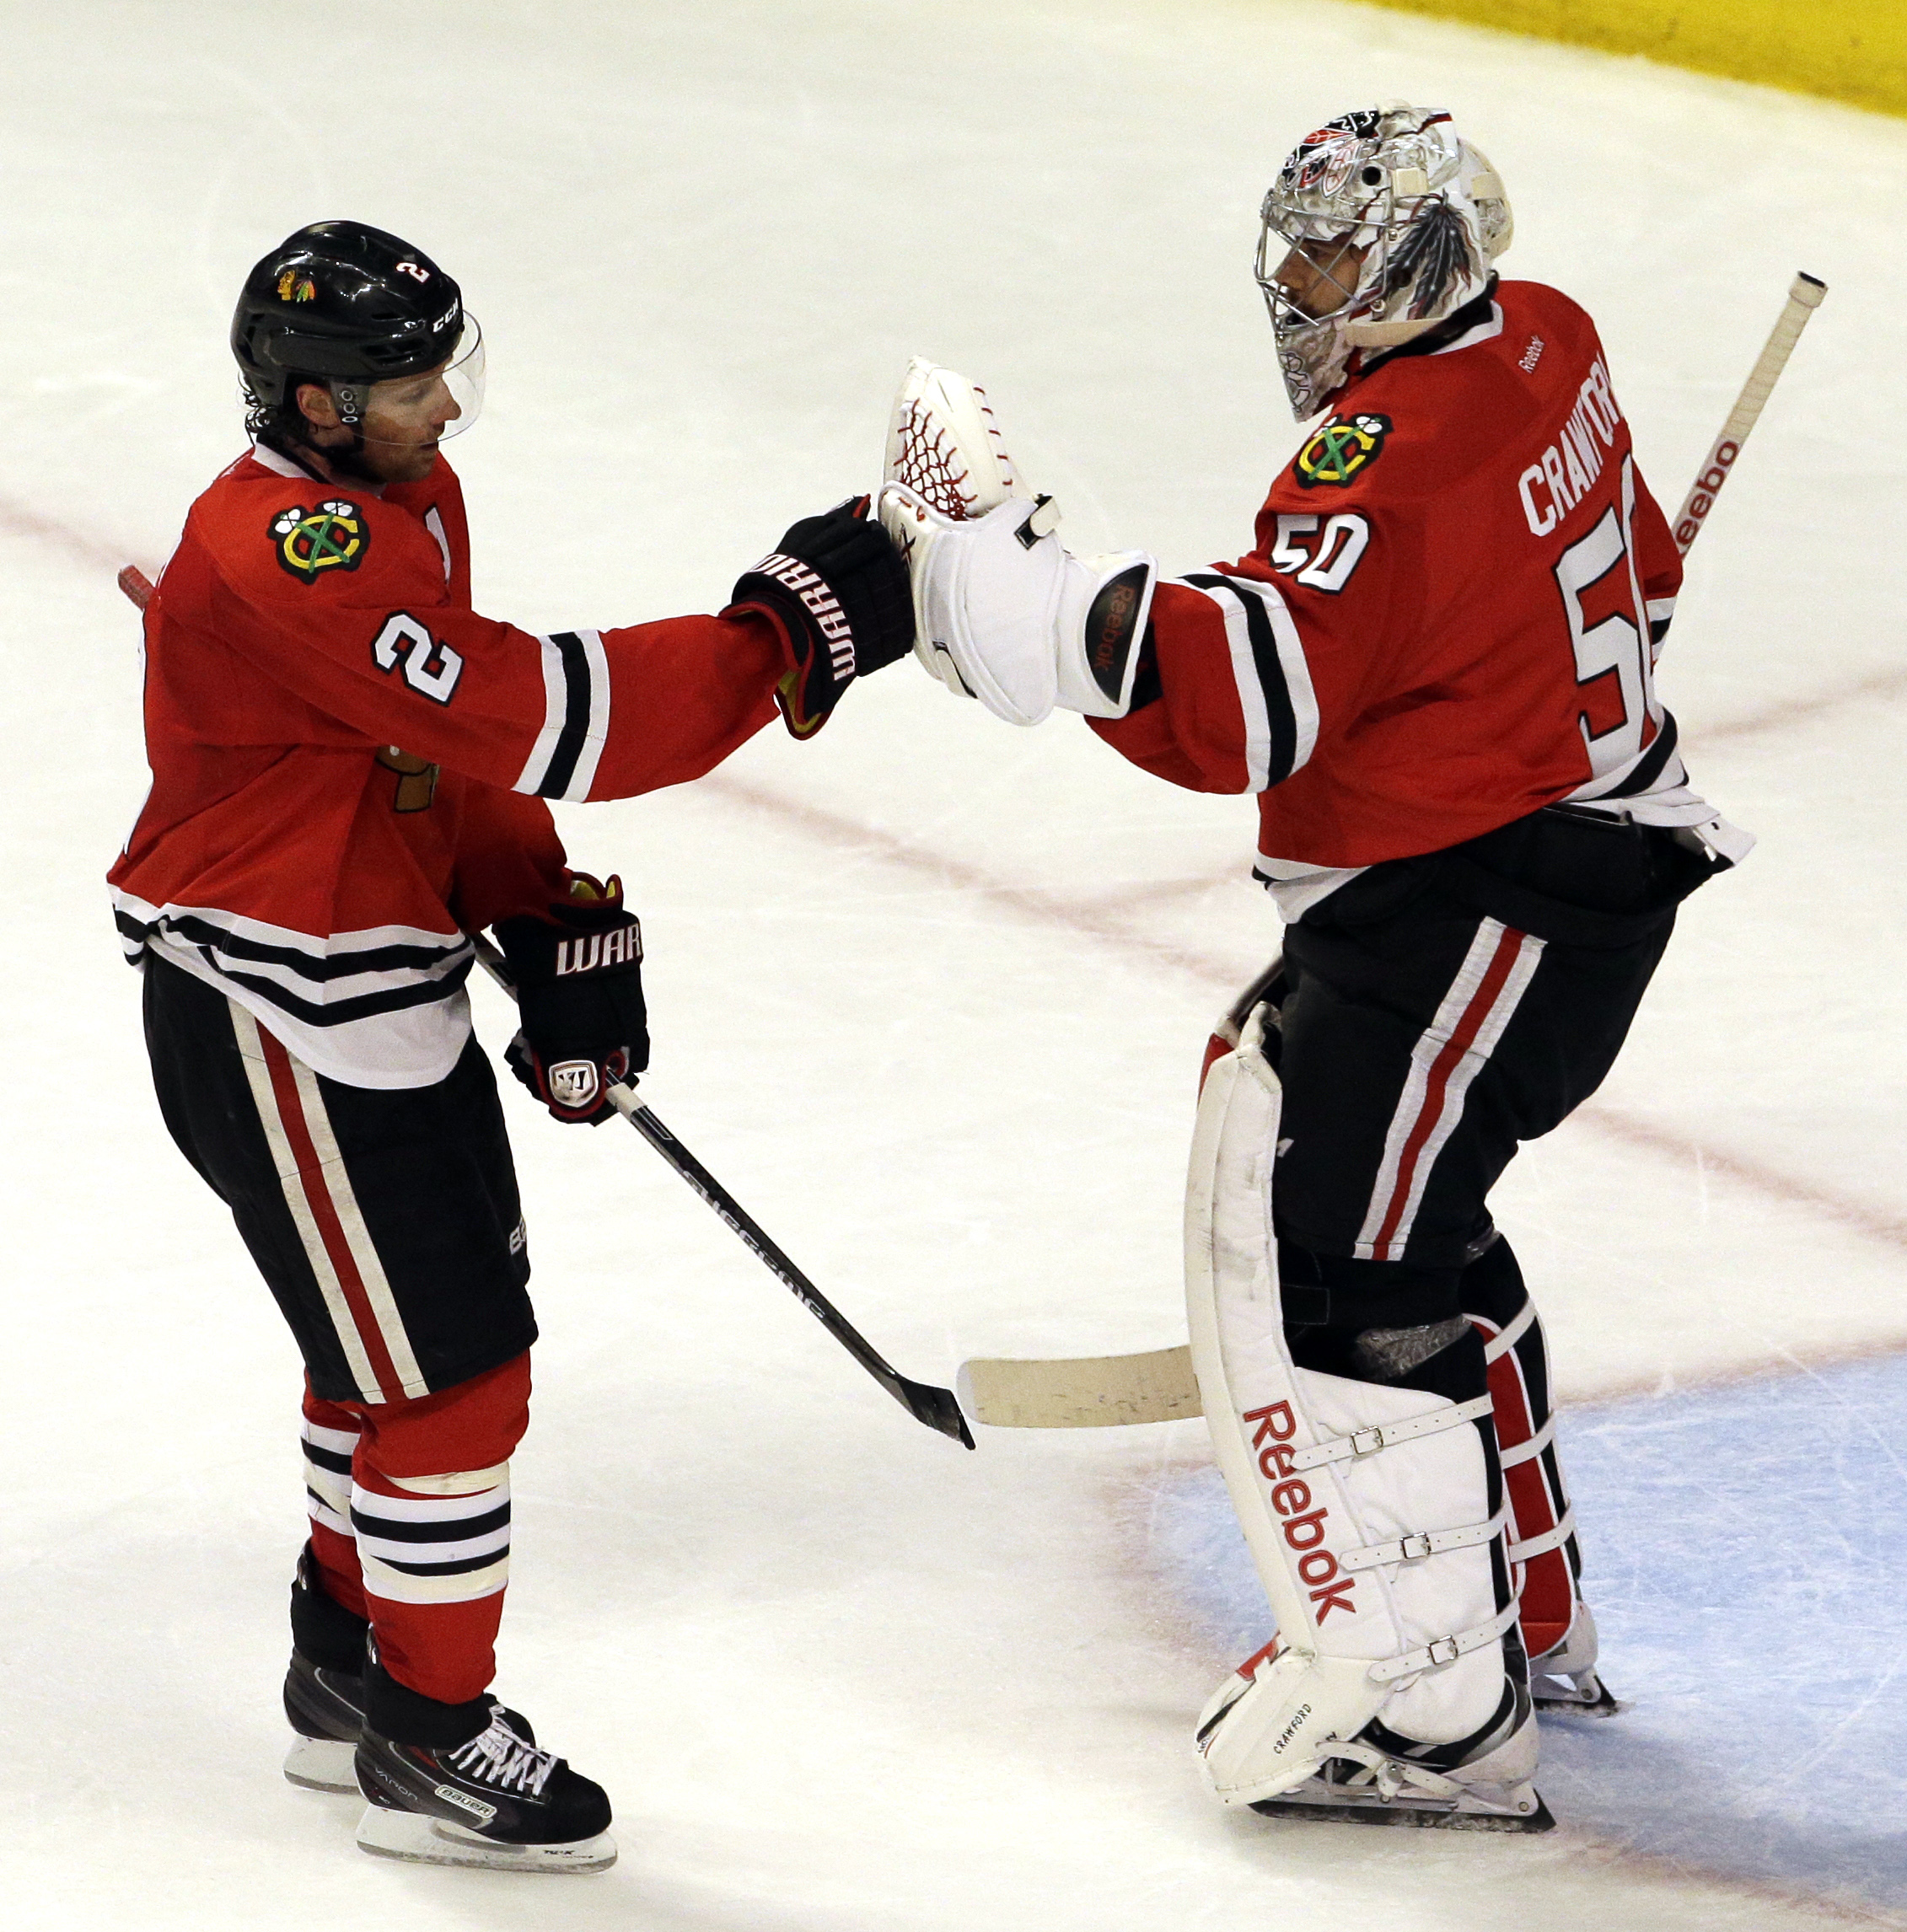 Chicago Blackhawks defenseman Duncan Keith, left, celebrates with goalie Corey Crawford after scoring his goal against the Nashville Predators during the third period in Game 6 of an NHL Western Conference hockey playoff series Saturday, April 25, 2015, i